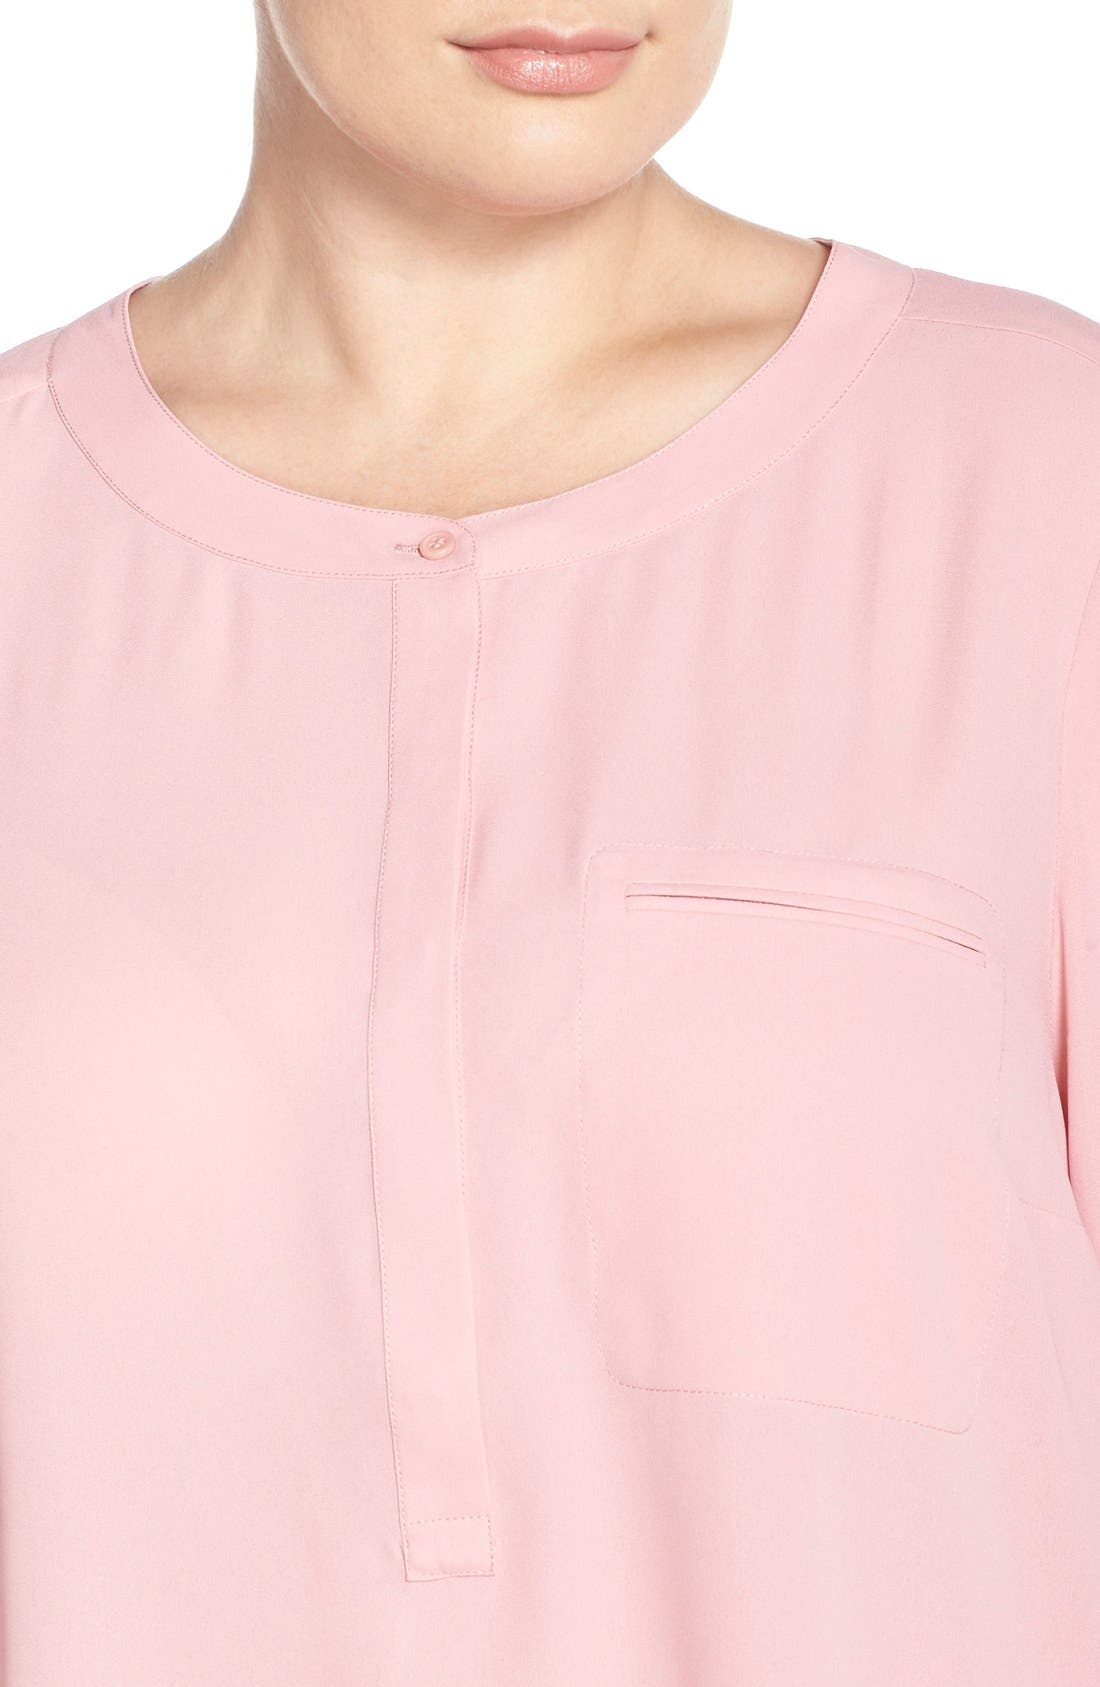 Henley Top,                             Alternate thumbnail 269, color,